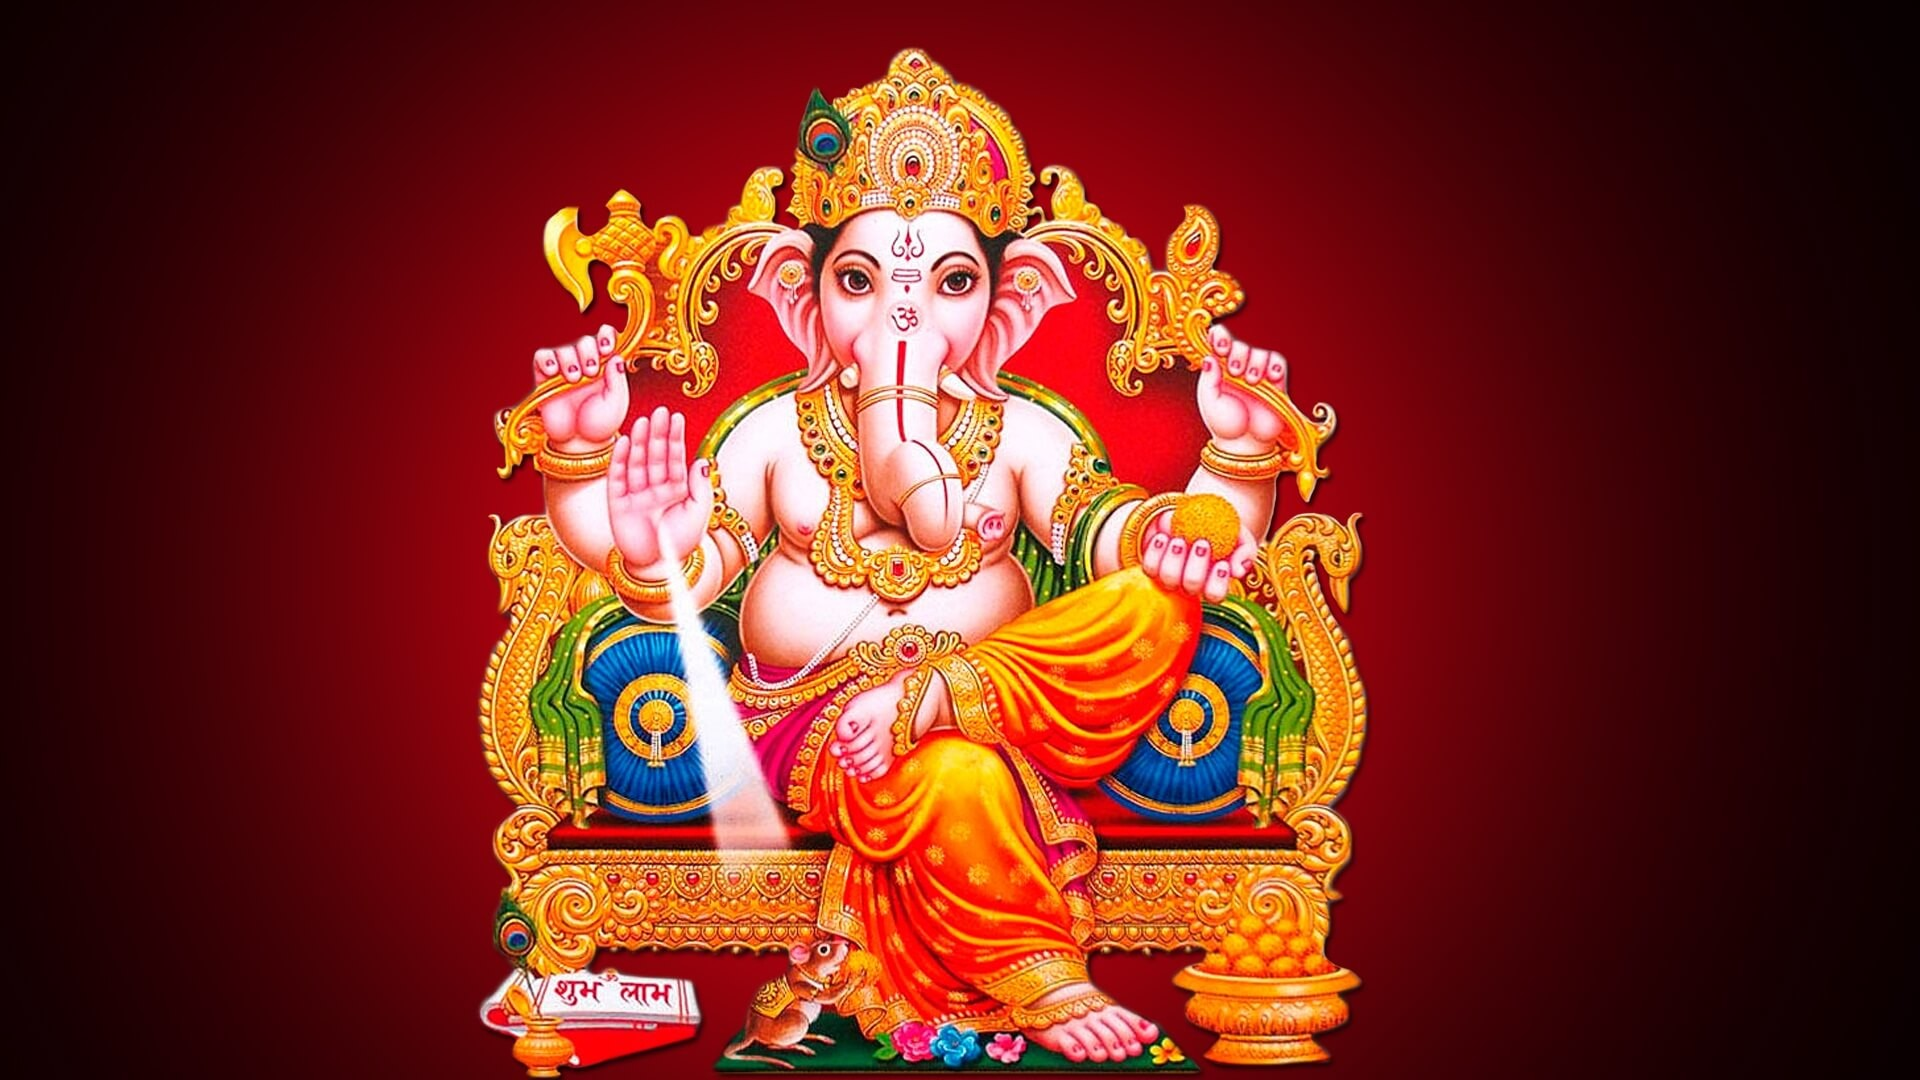 of Lord Ganesha Wallpapers 64 images